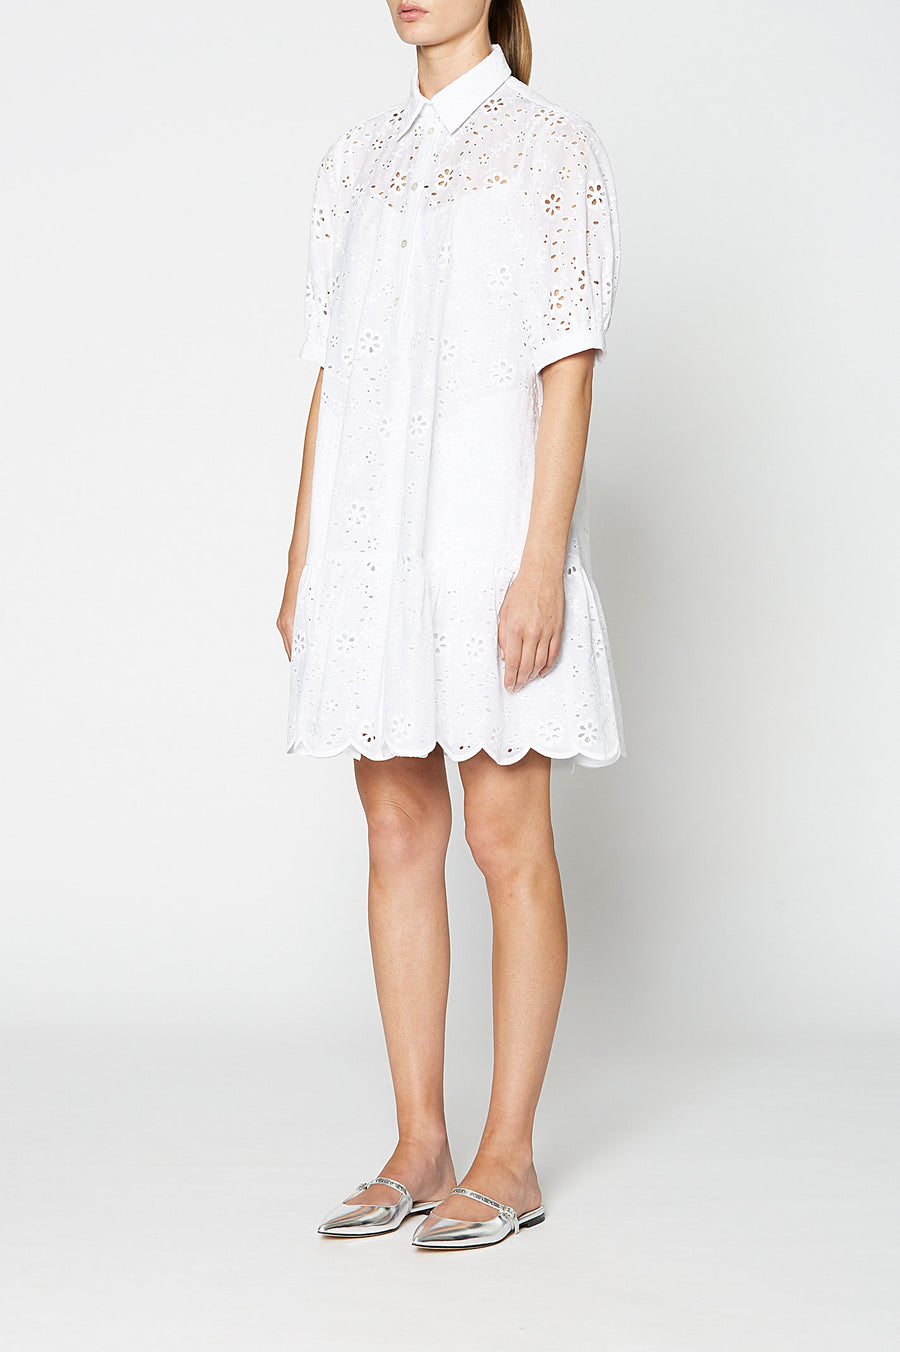 EMBROIDERED DRESS WHITE, WHITE color